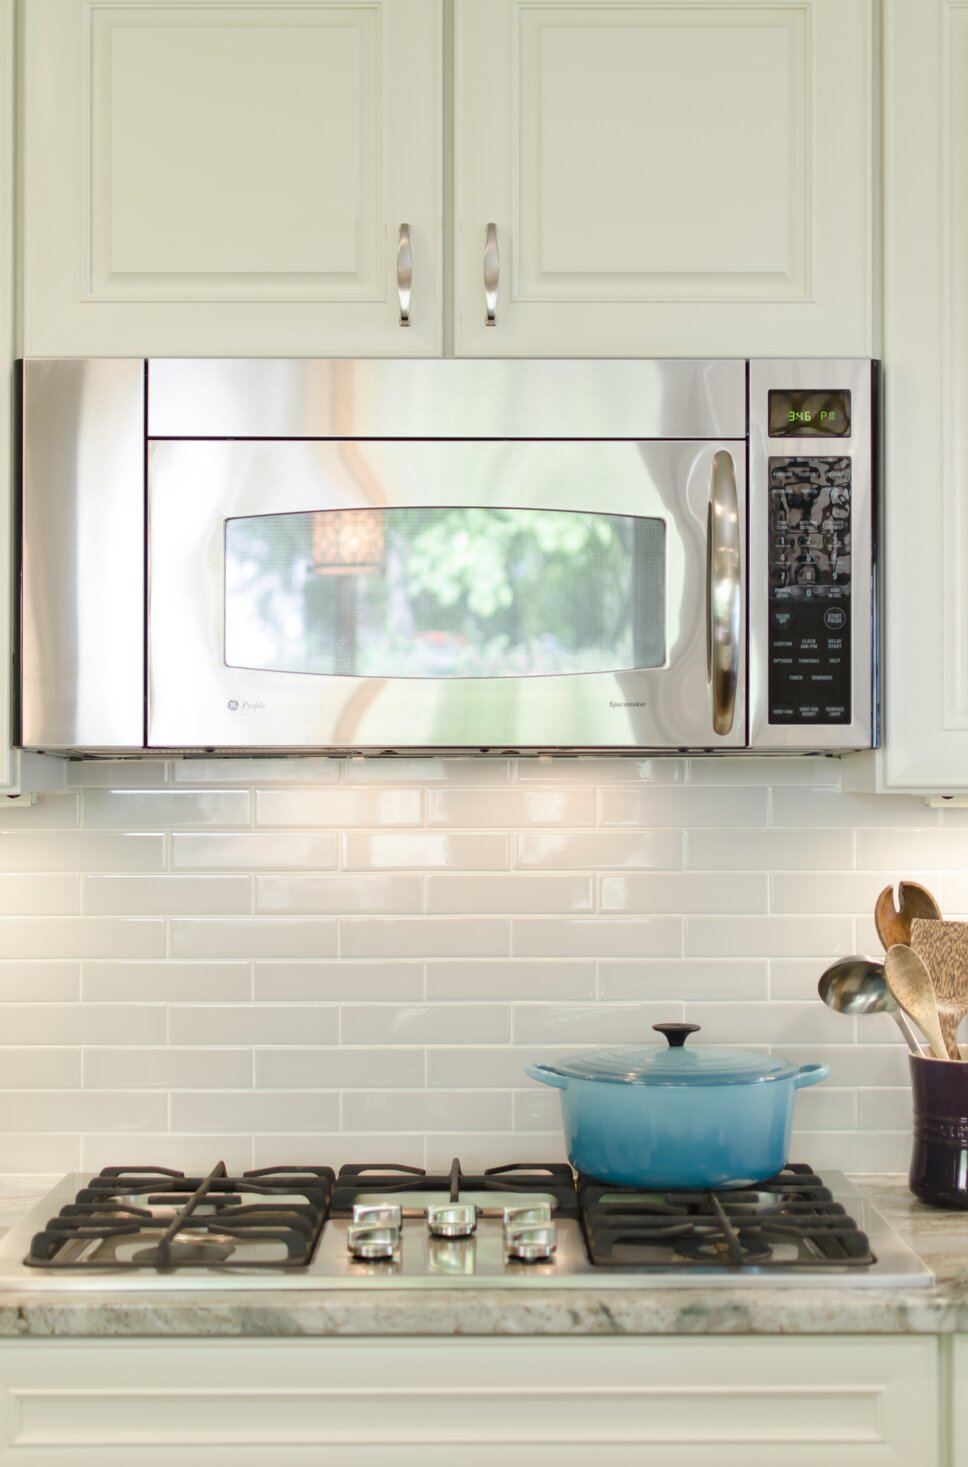 Because the granite was so active and interesting, we chose a simple dove gray subway tile, but in a 2x8 size to add extra visual interest. Contemporary Kitchen design